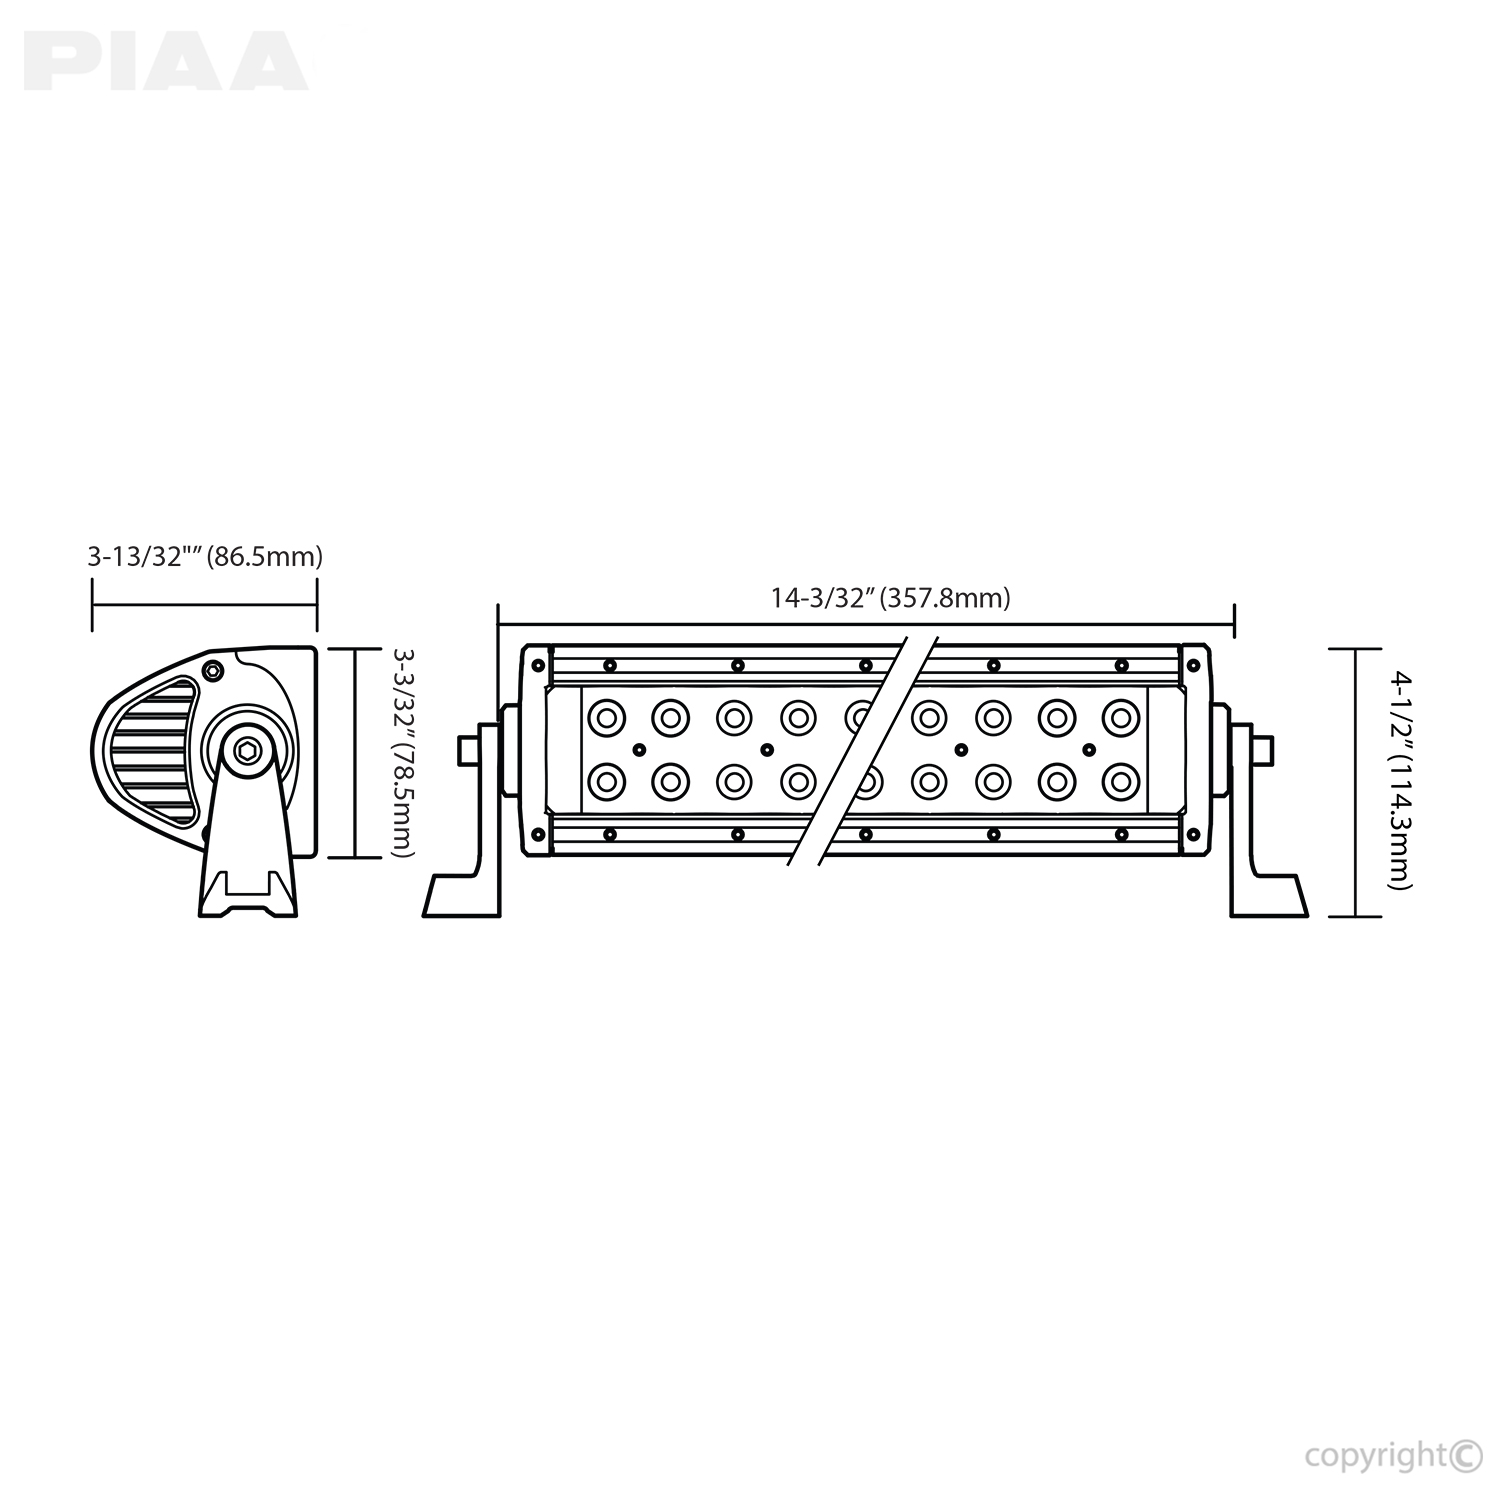 Piaa 1100x wiring diagram auto electrical wiring diagram piaa 1100x wiring diagram wire center u2022 rh caribcar co 1000 driving lights piaa 1000 driving lights piaa cheapraybanclubmaster Images